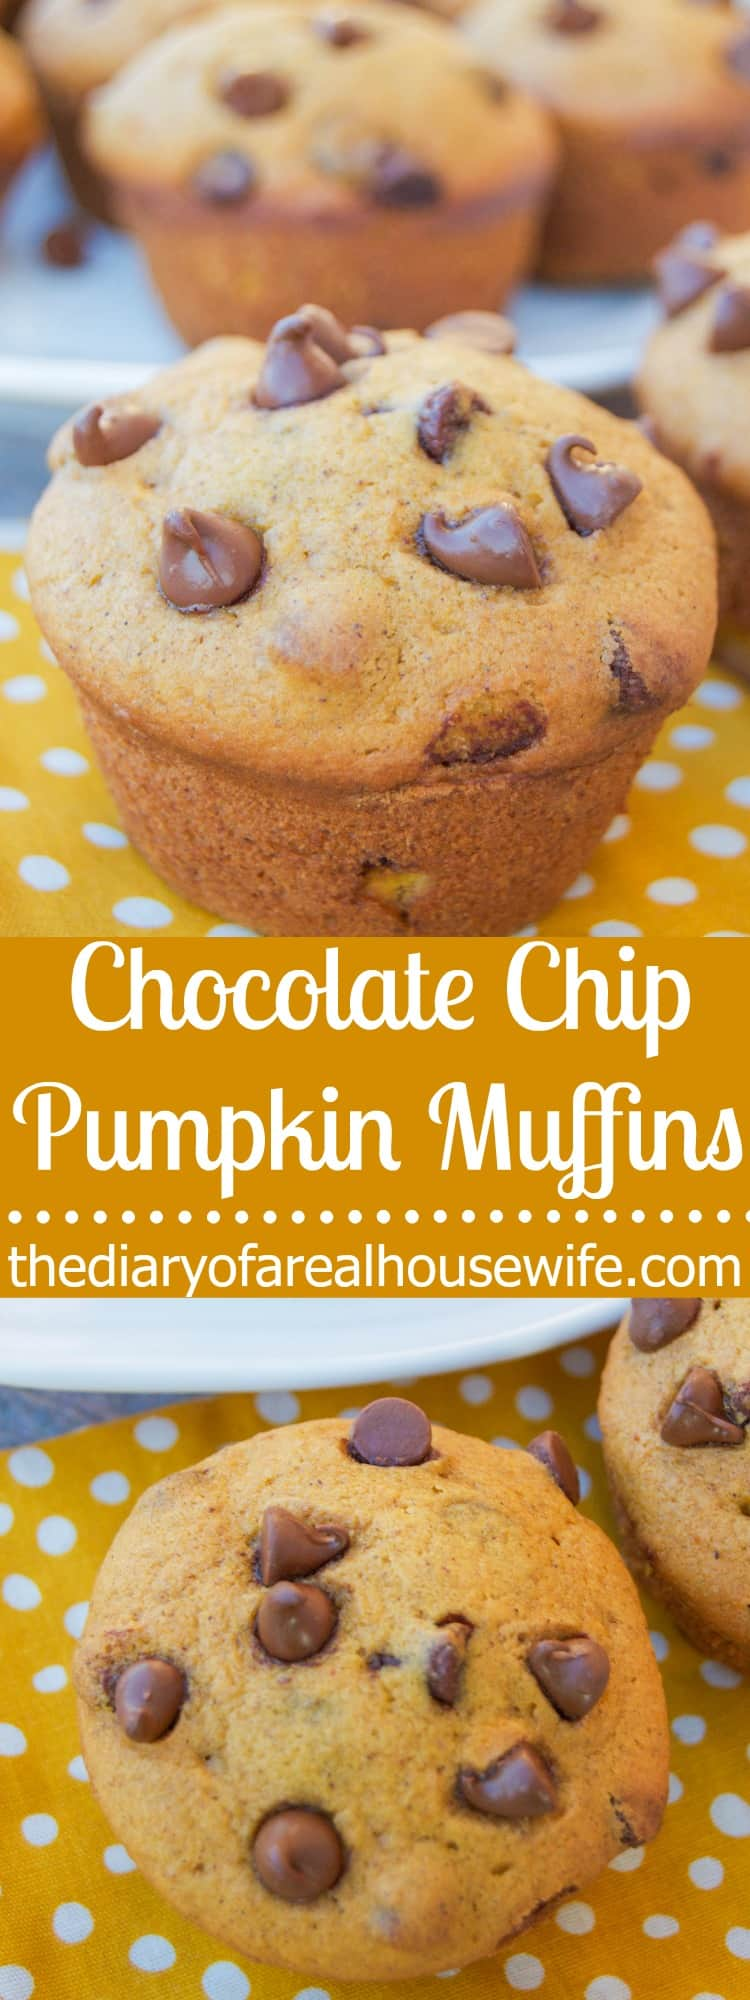 chocolate-chip-pumpkin-muffins